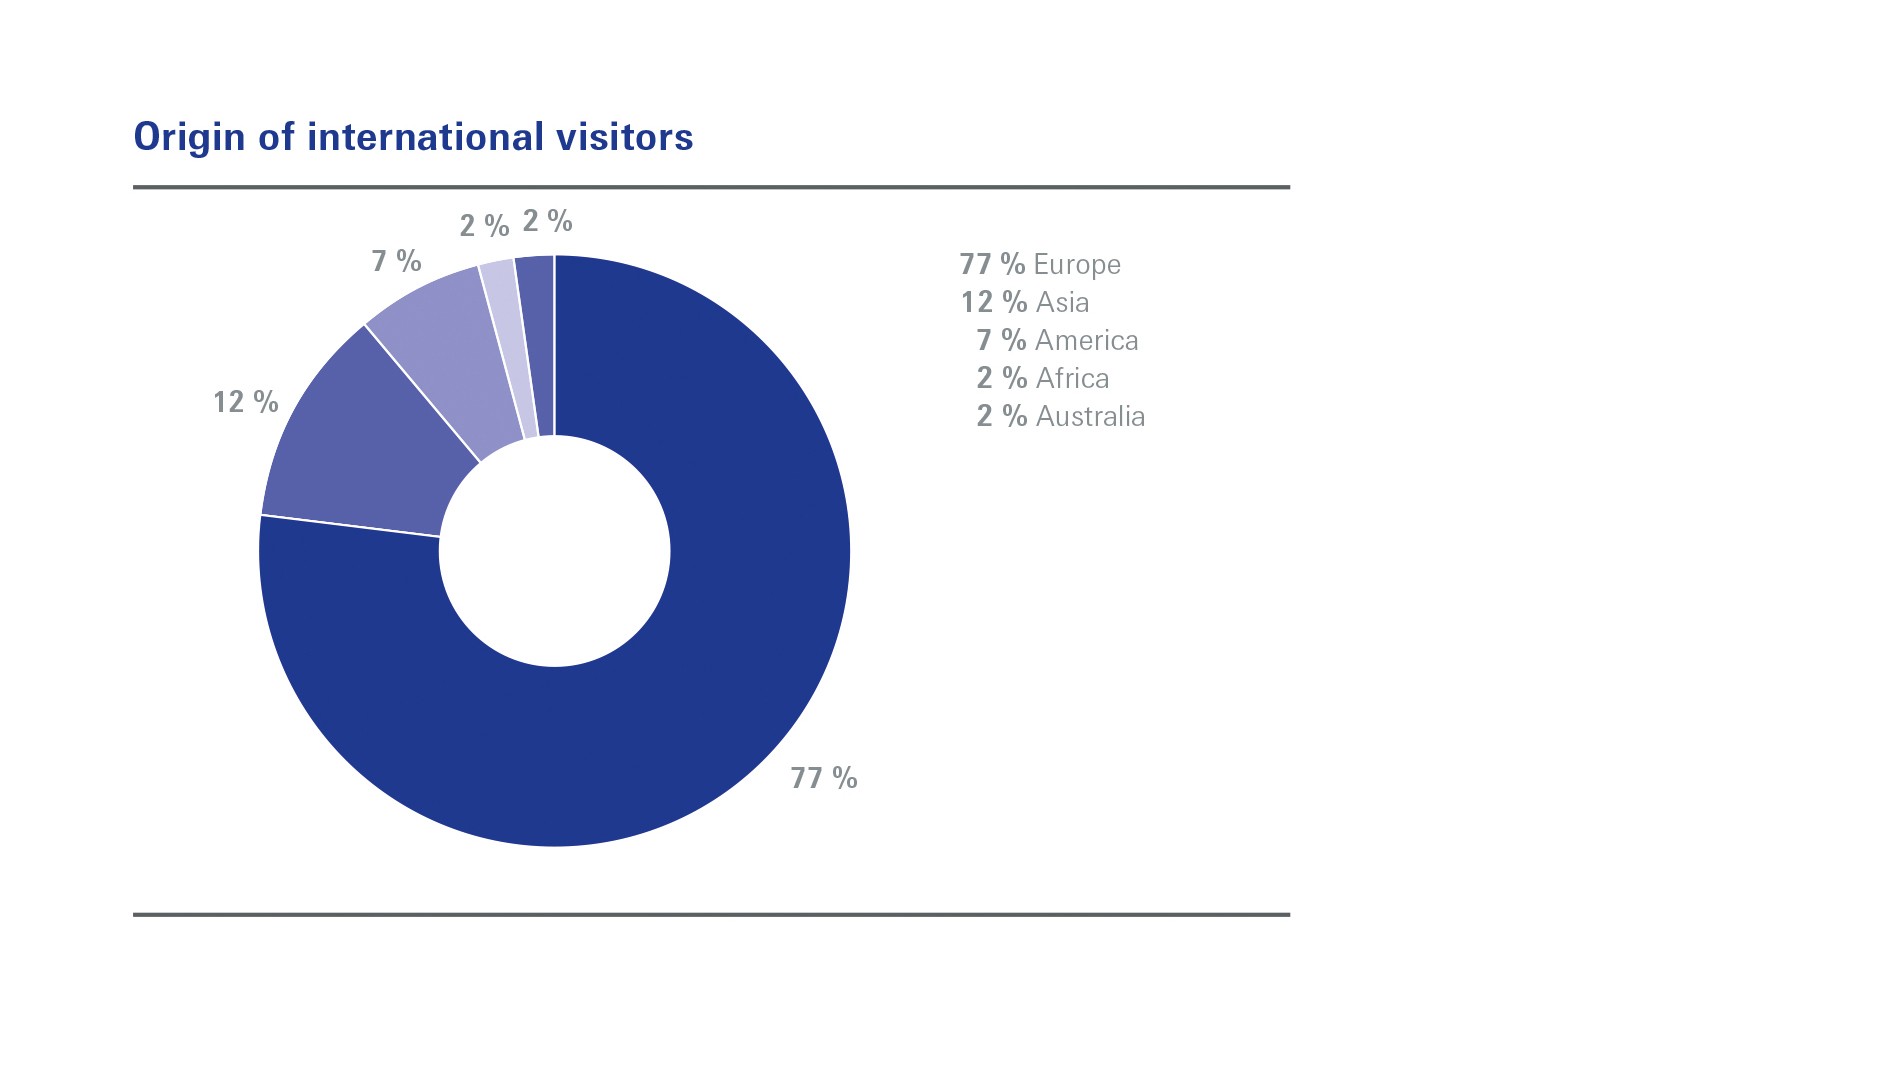 Origin of international visitors